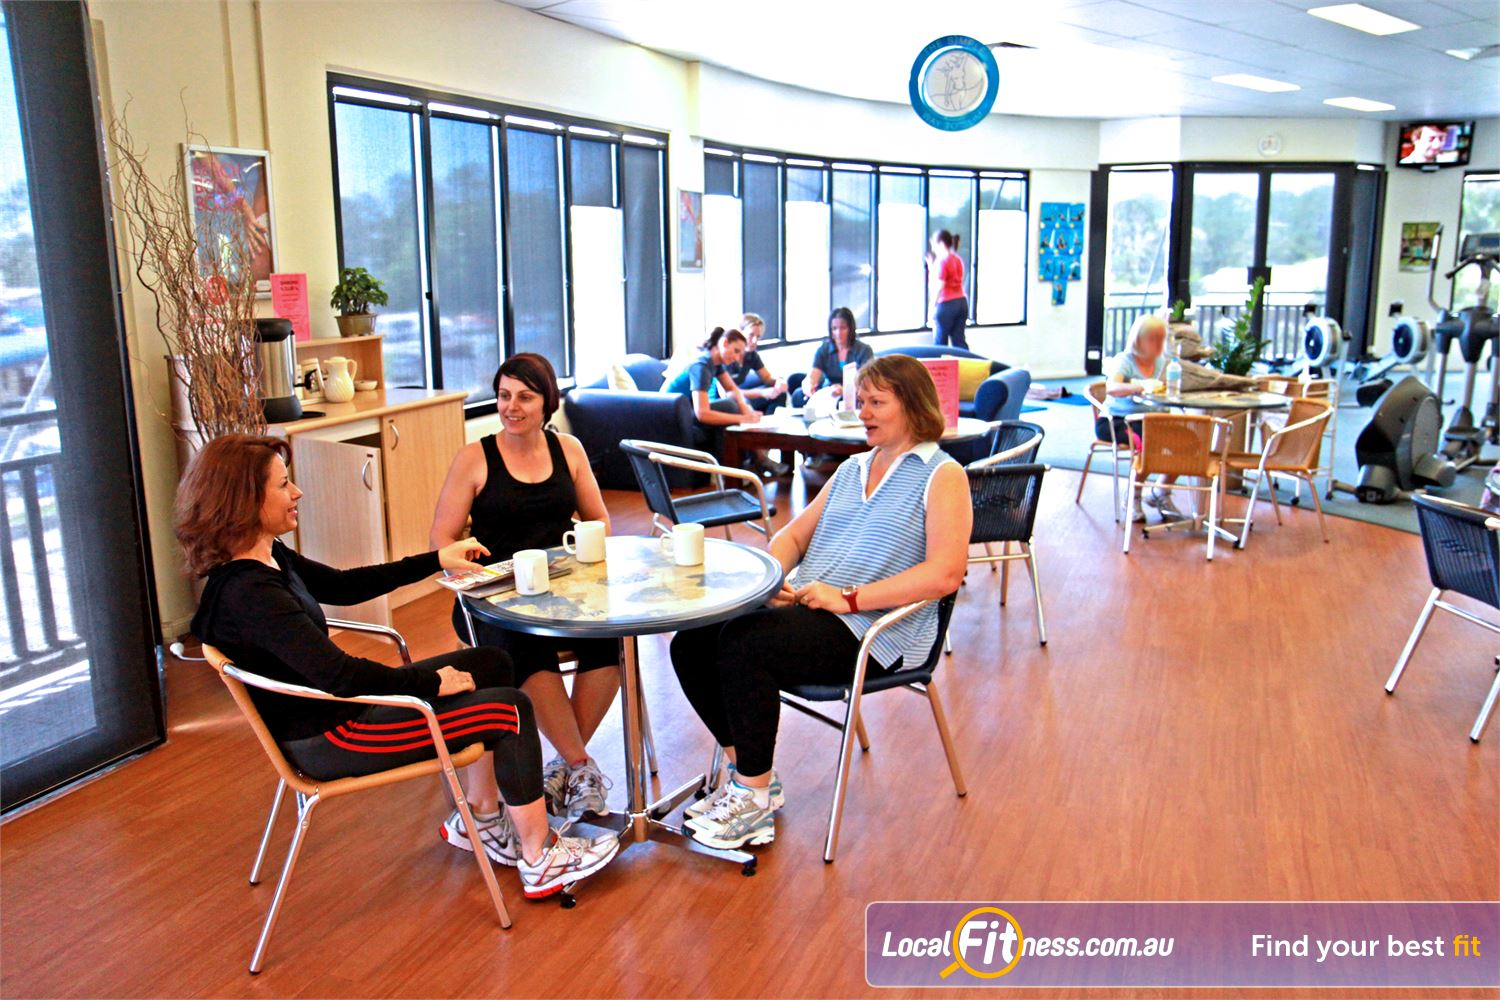 Fernwood Fitness Petrie Chat and socialise with other Fernwood Petrie women's gym members.